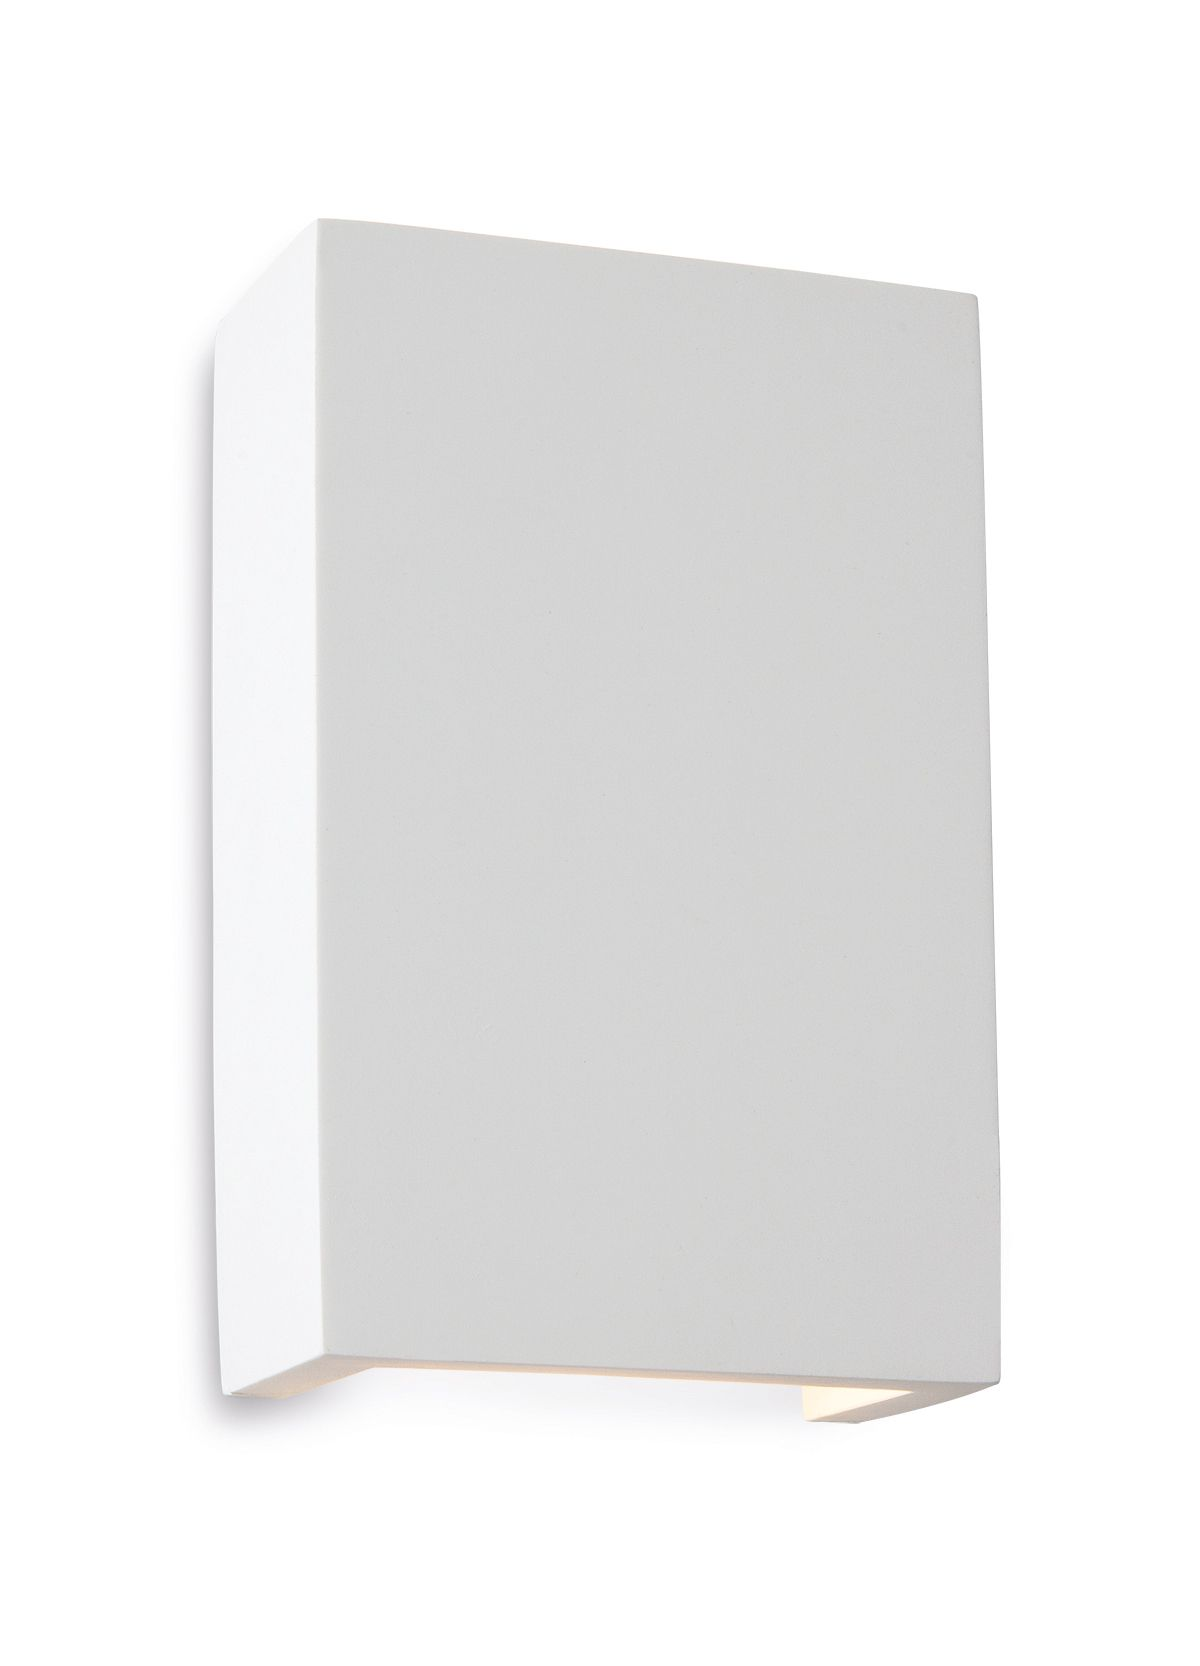 Firstlight 8324 White with White LED s Gallery Square Plaster Wall Light